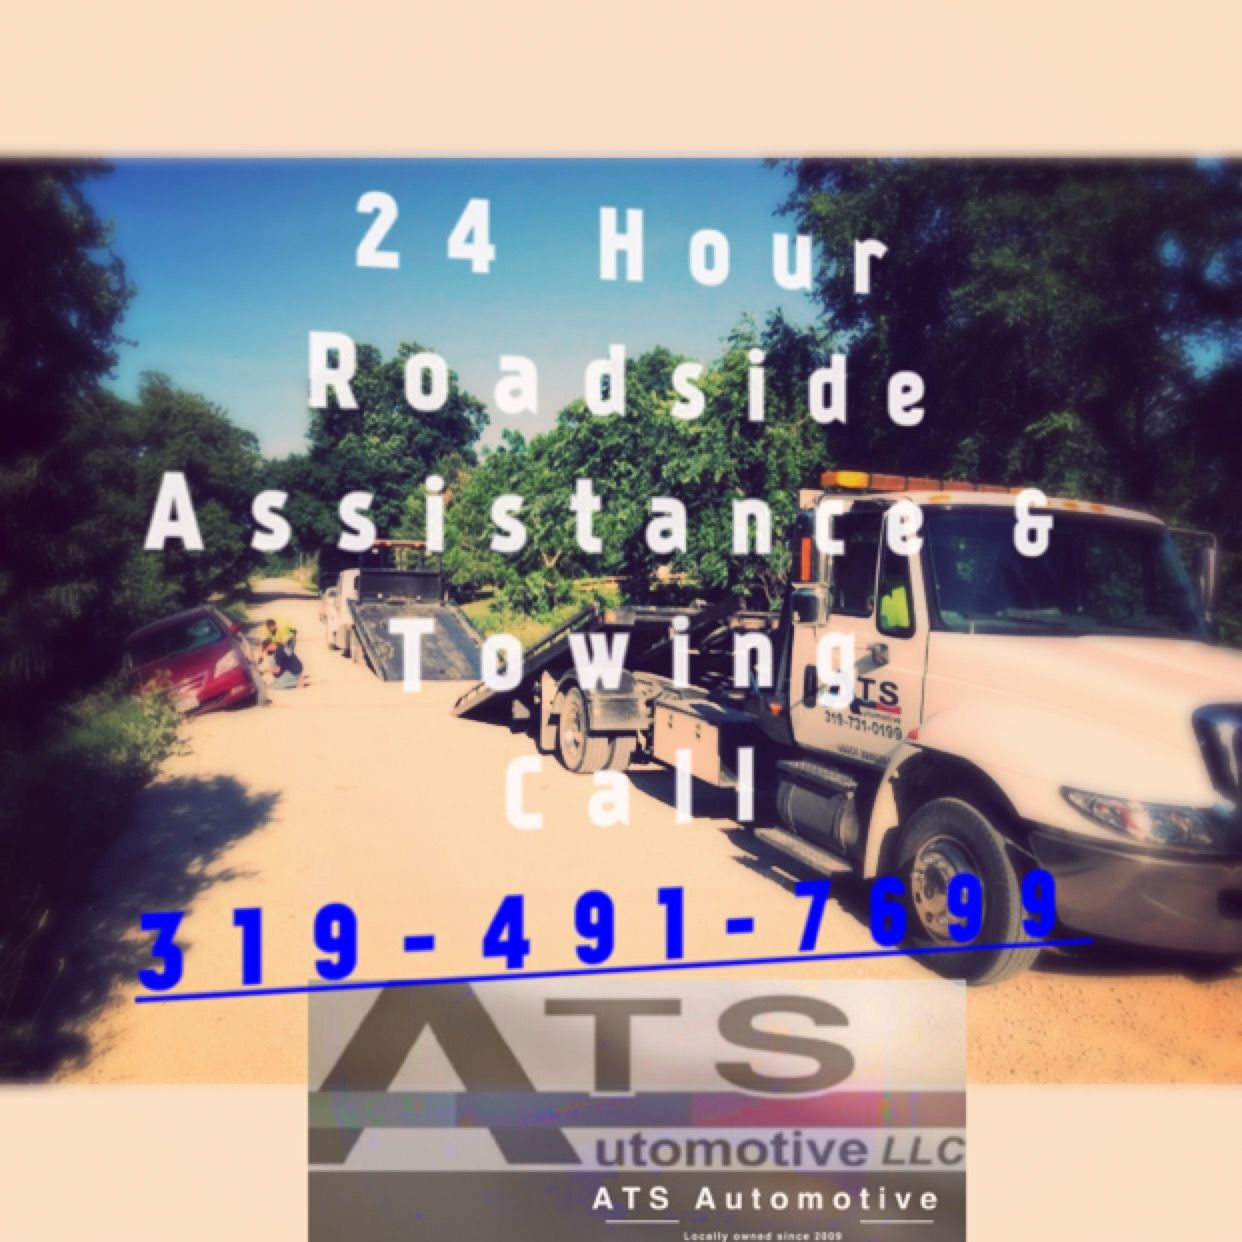 Your local roadside assistance & towing team